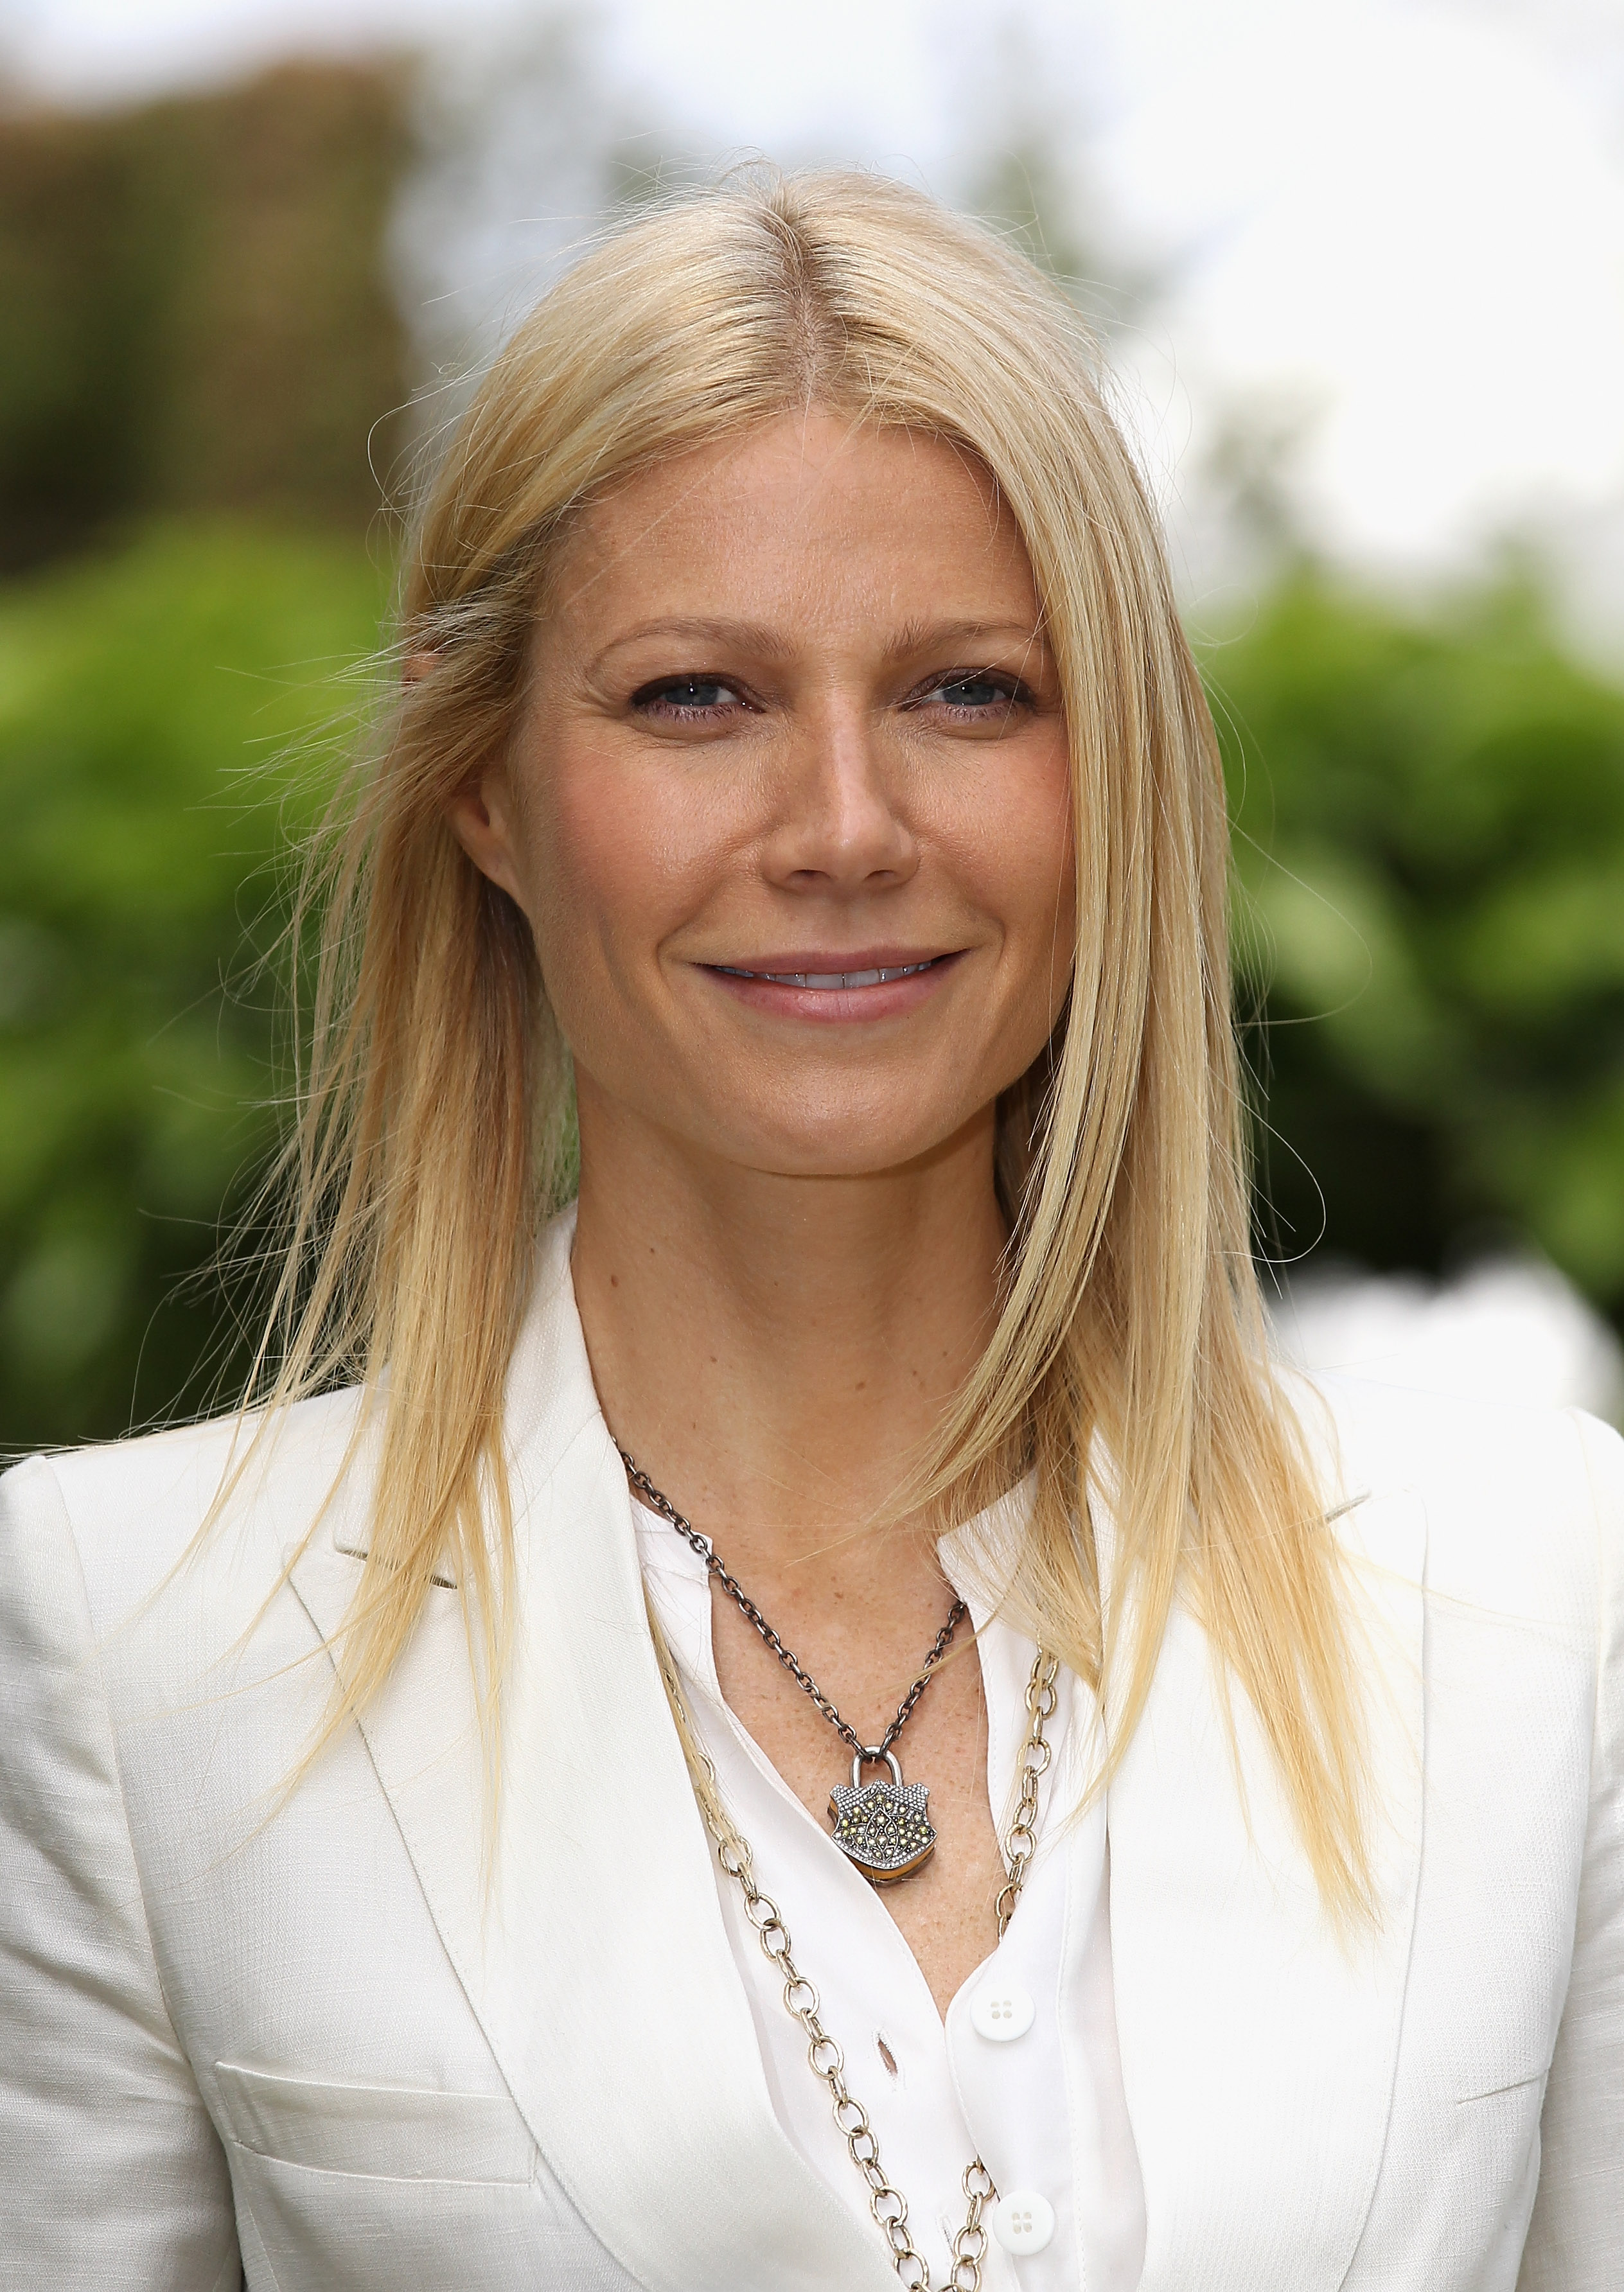 Watch Gwyneth Paltrow Claims Water Has Feelings in Weird New BlogPost video